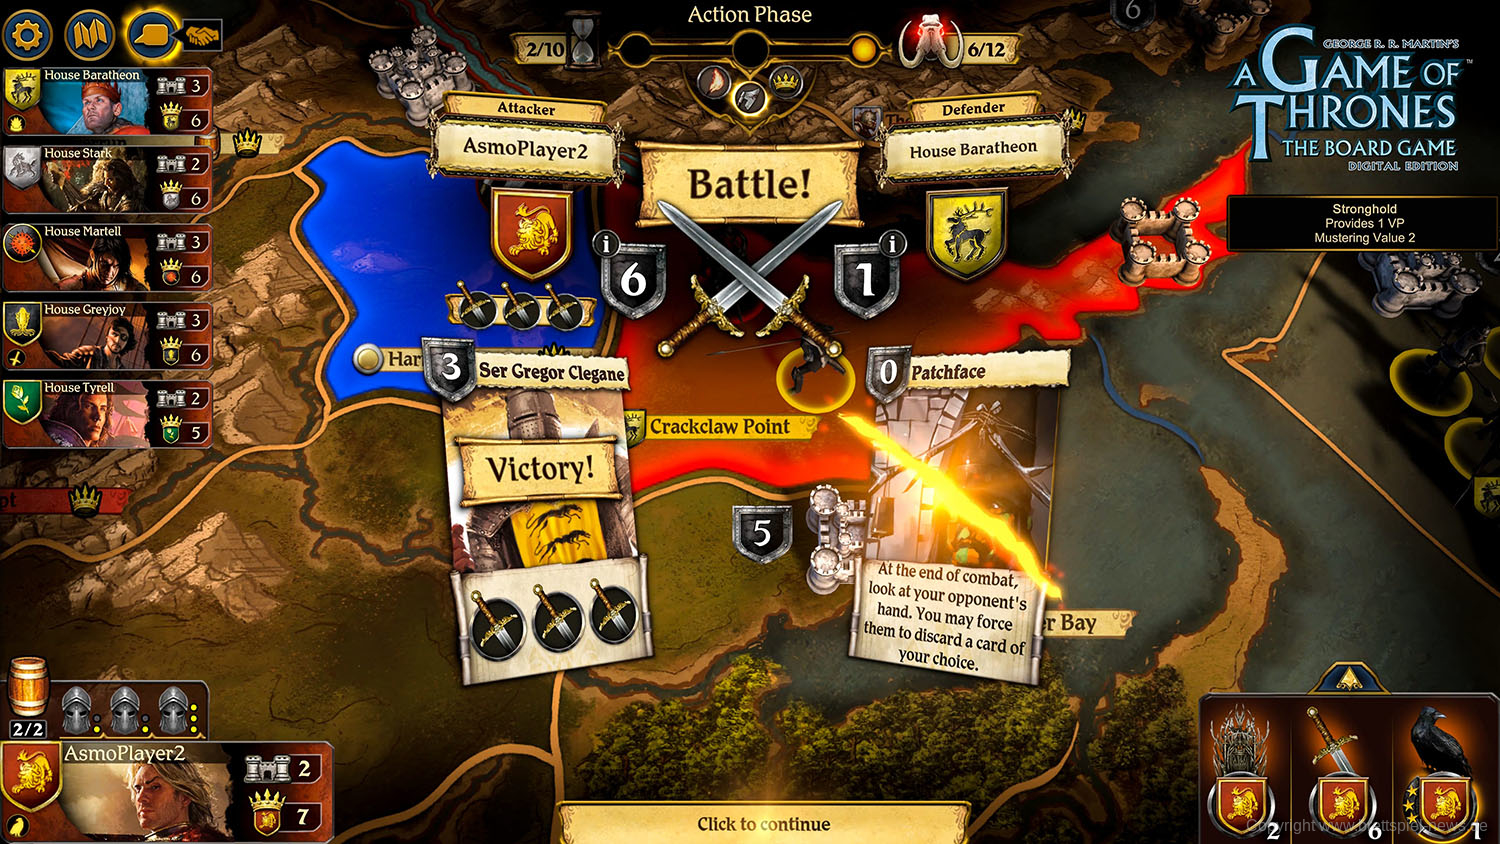 A Game of Thrones The Board Game Digital Edition Screenshot 3